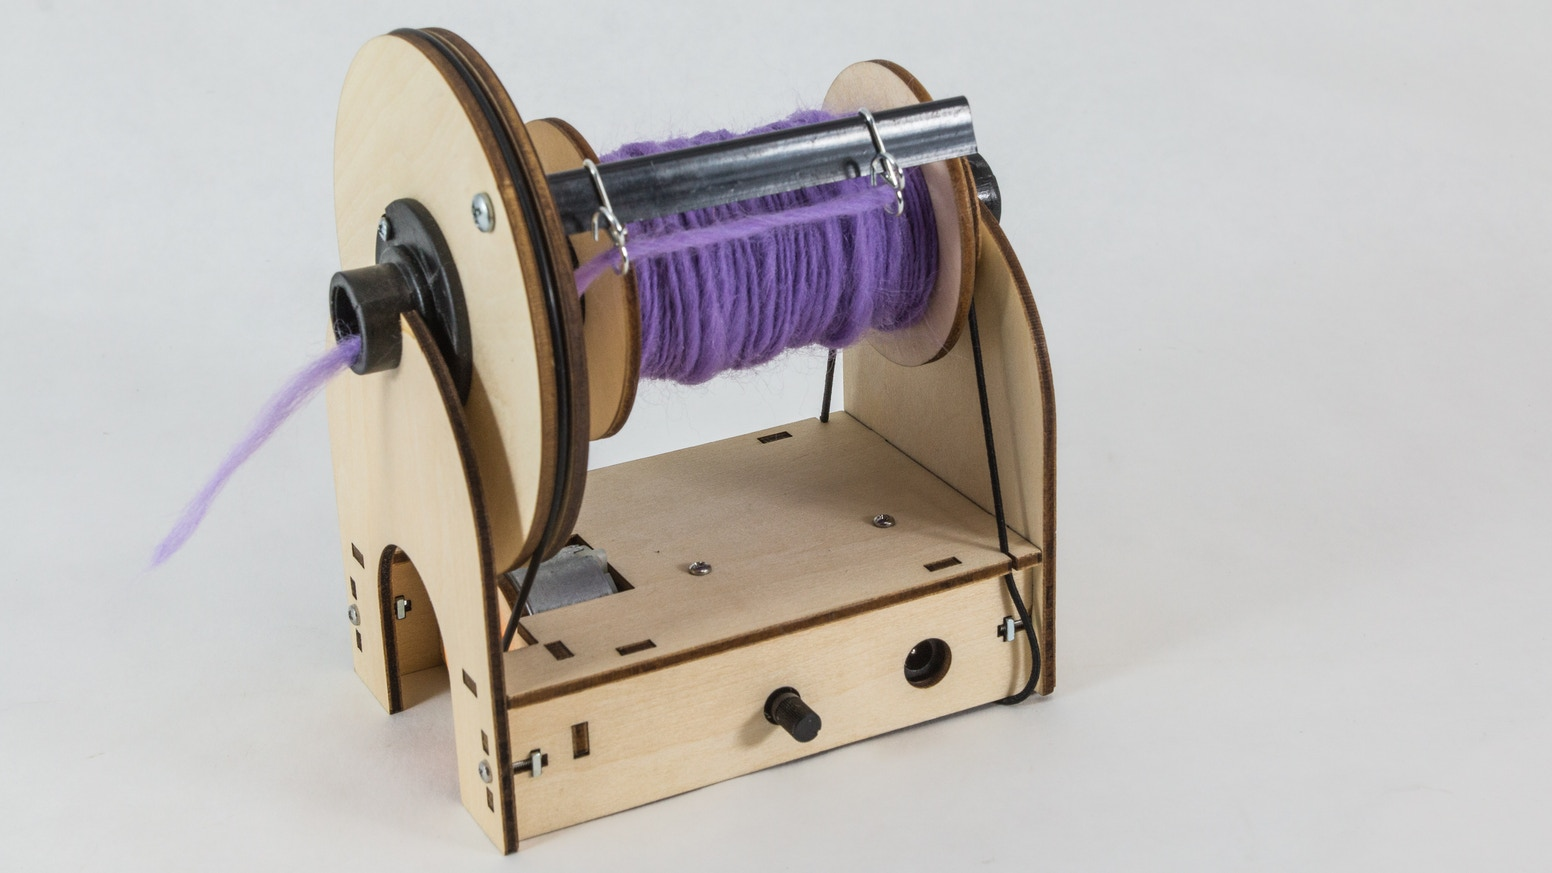 A $50 spinning wheel that makes spinning fiber into yarn easy. It is great for beginners or people who want a small spinning wheel.